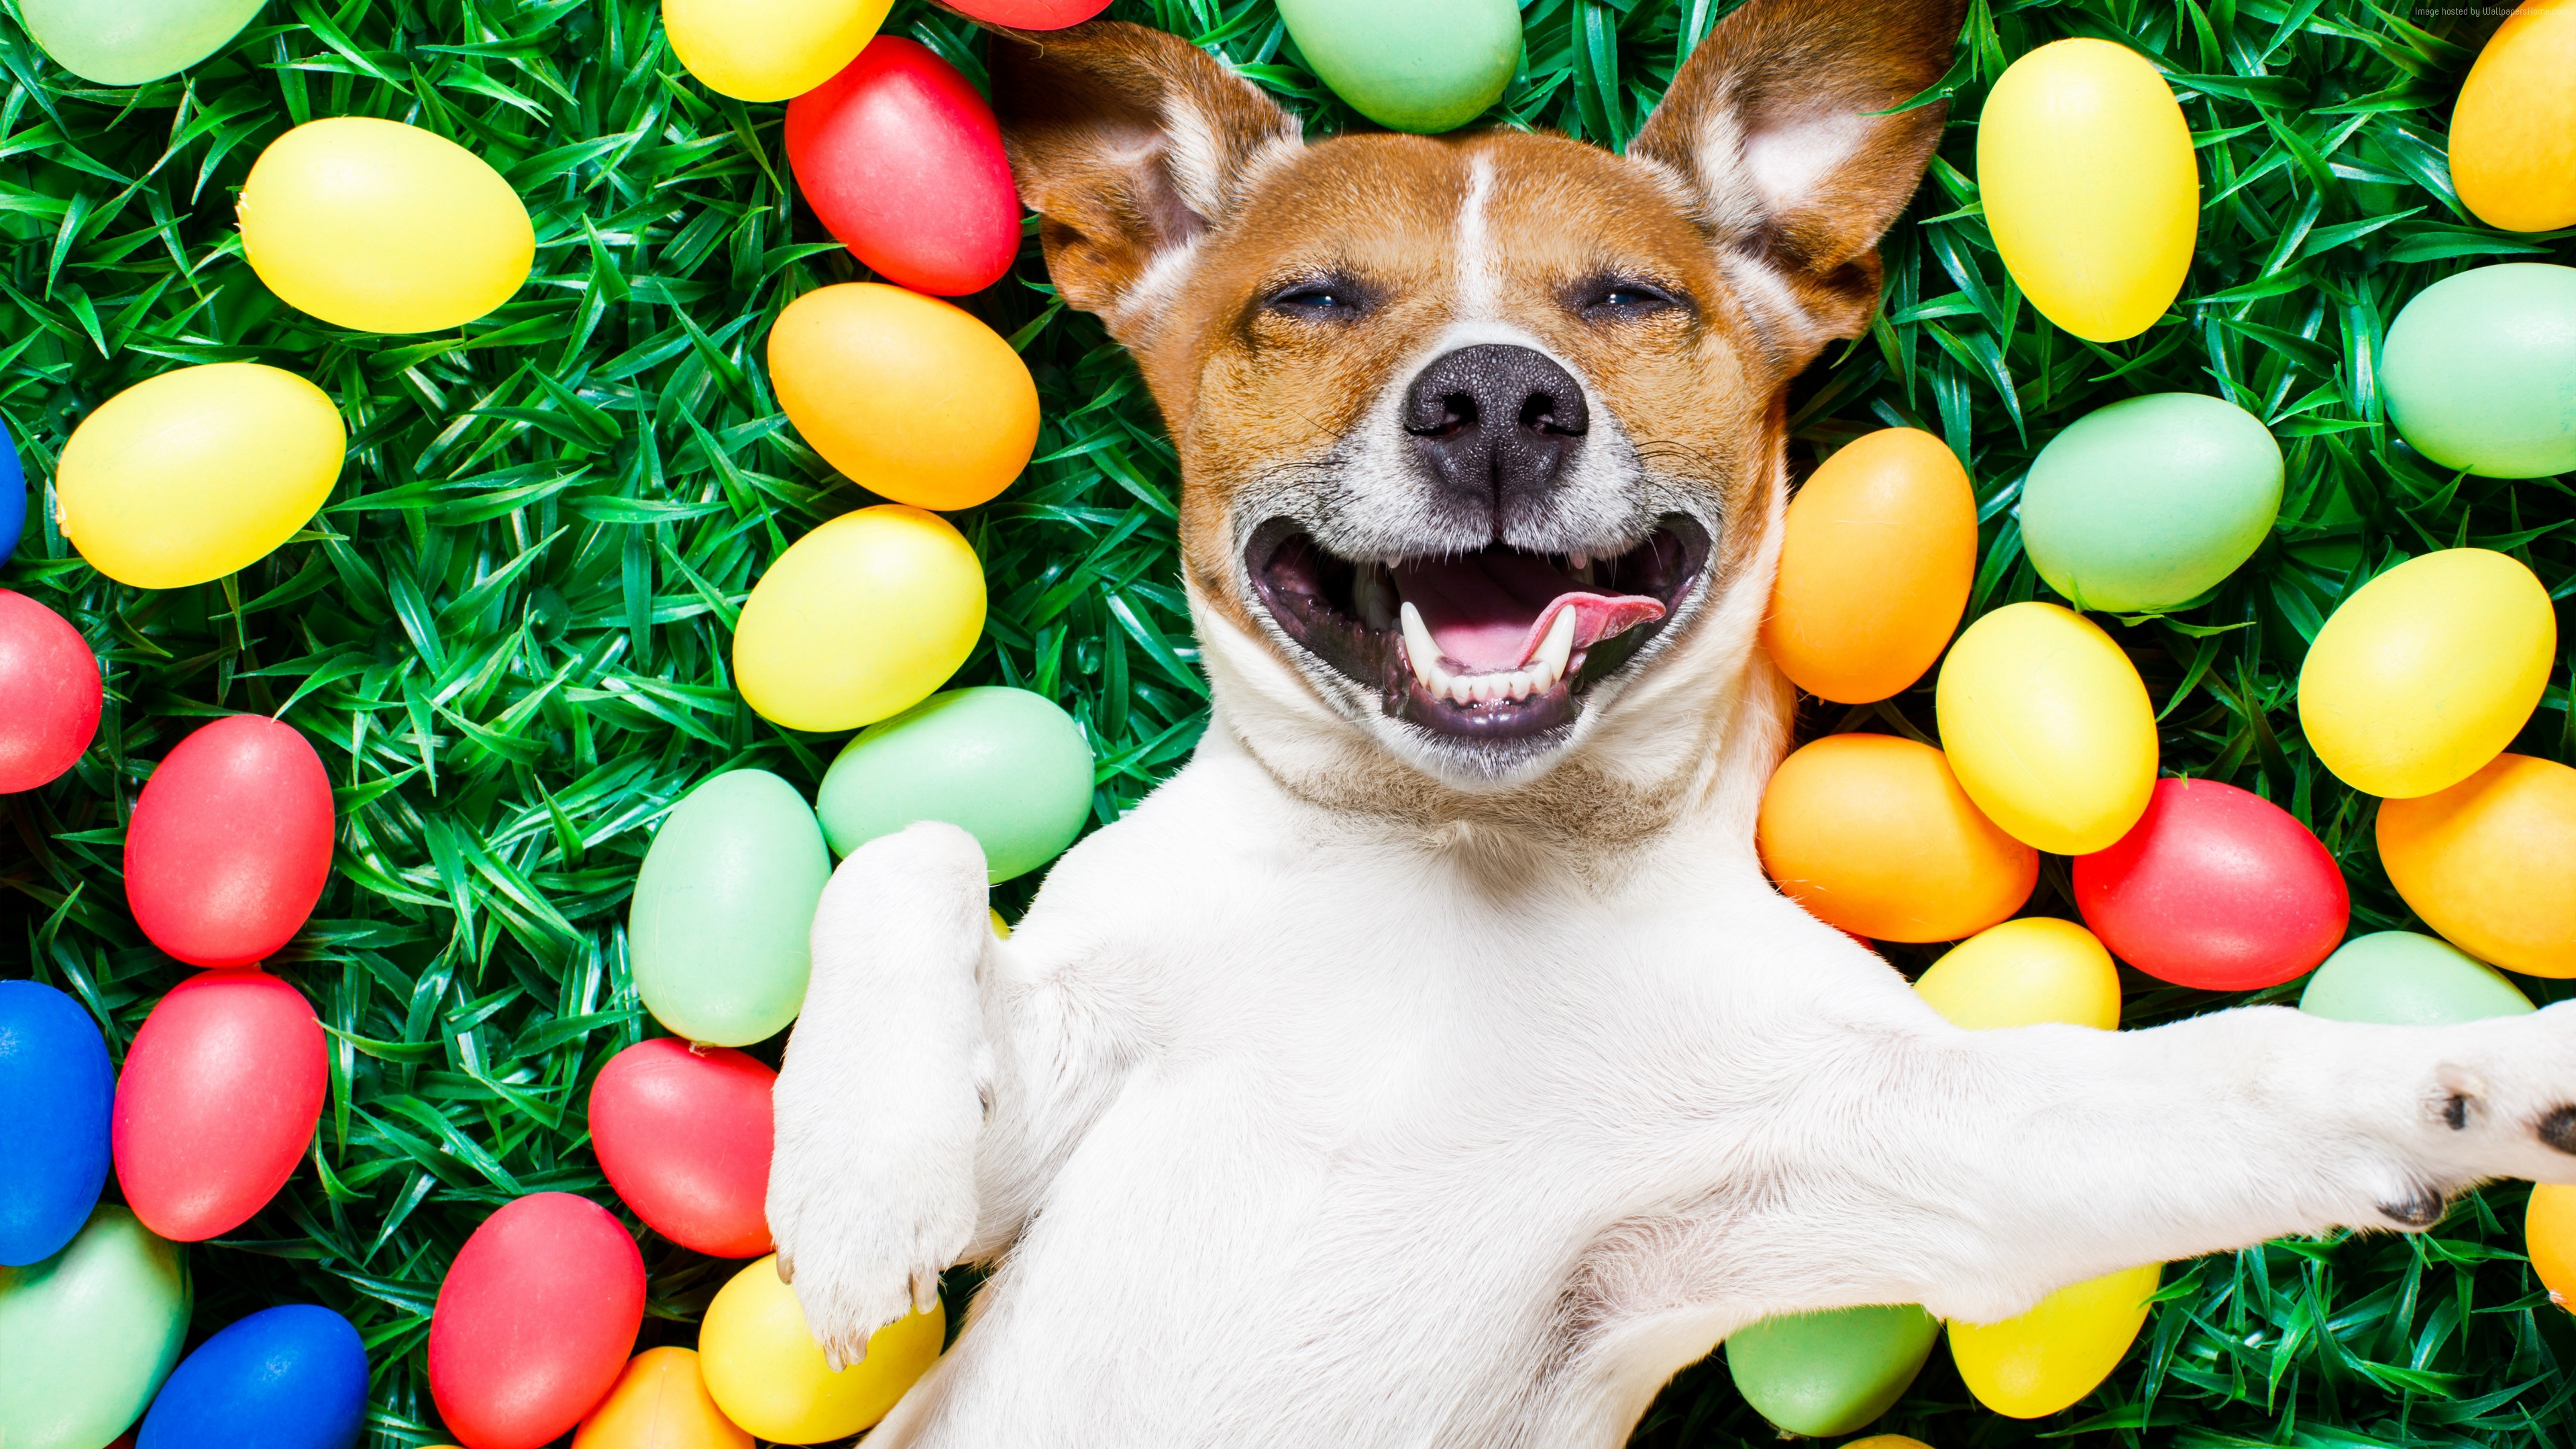 Wallpaper Easter, eggs, dog, 5k, Animals